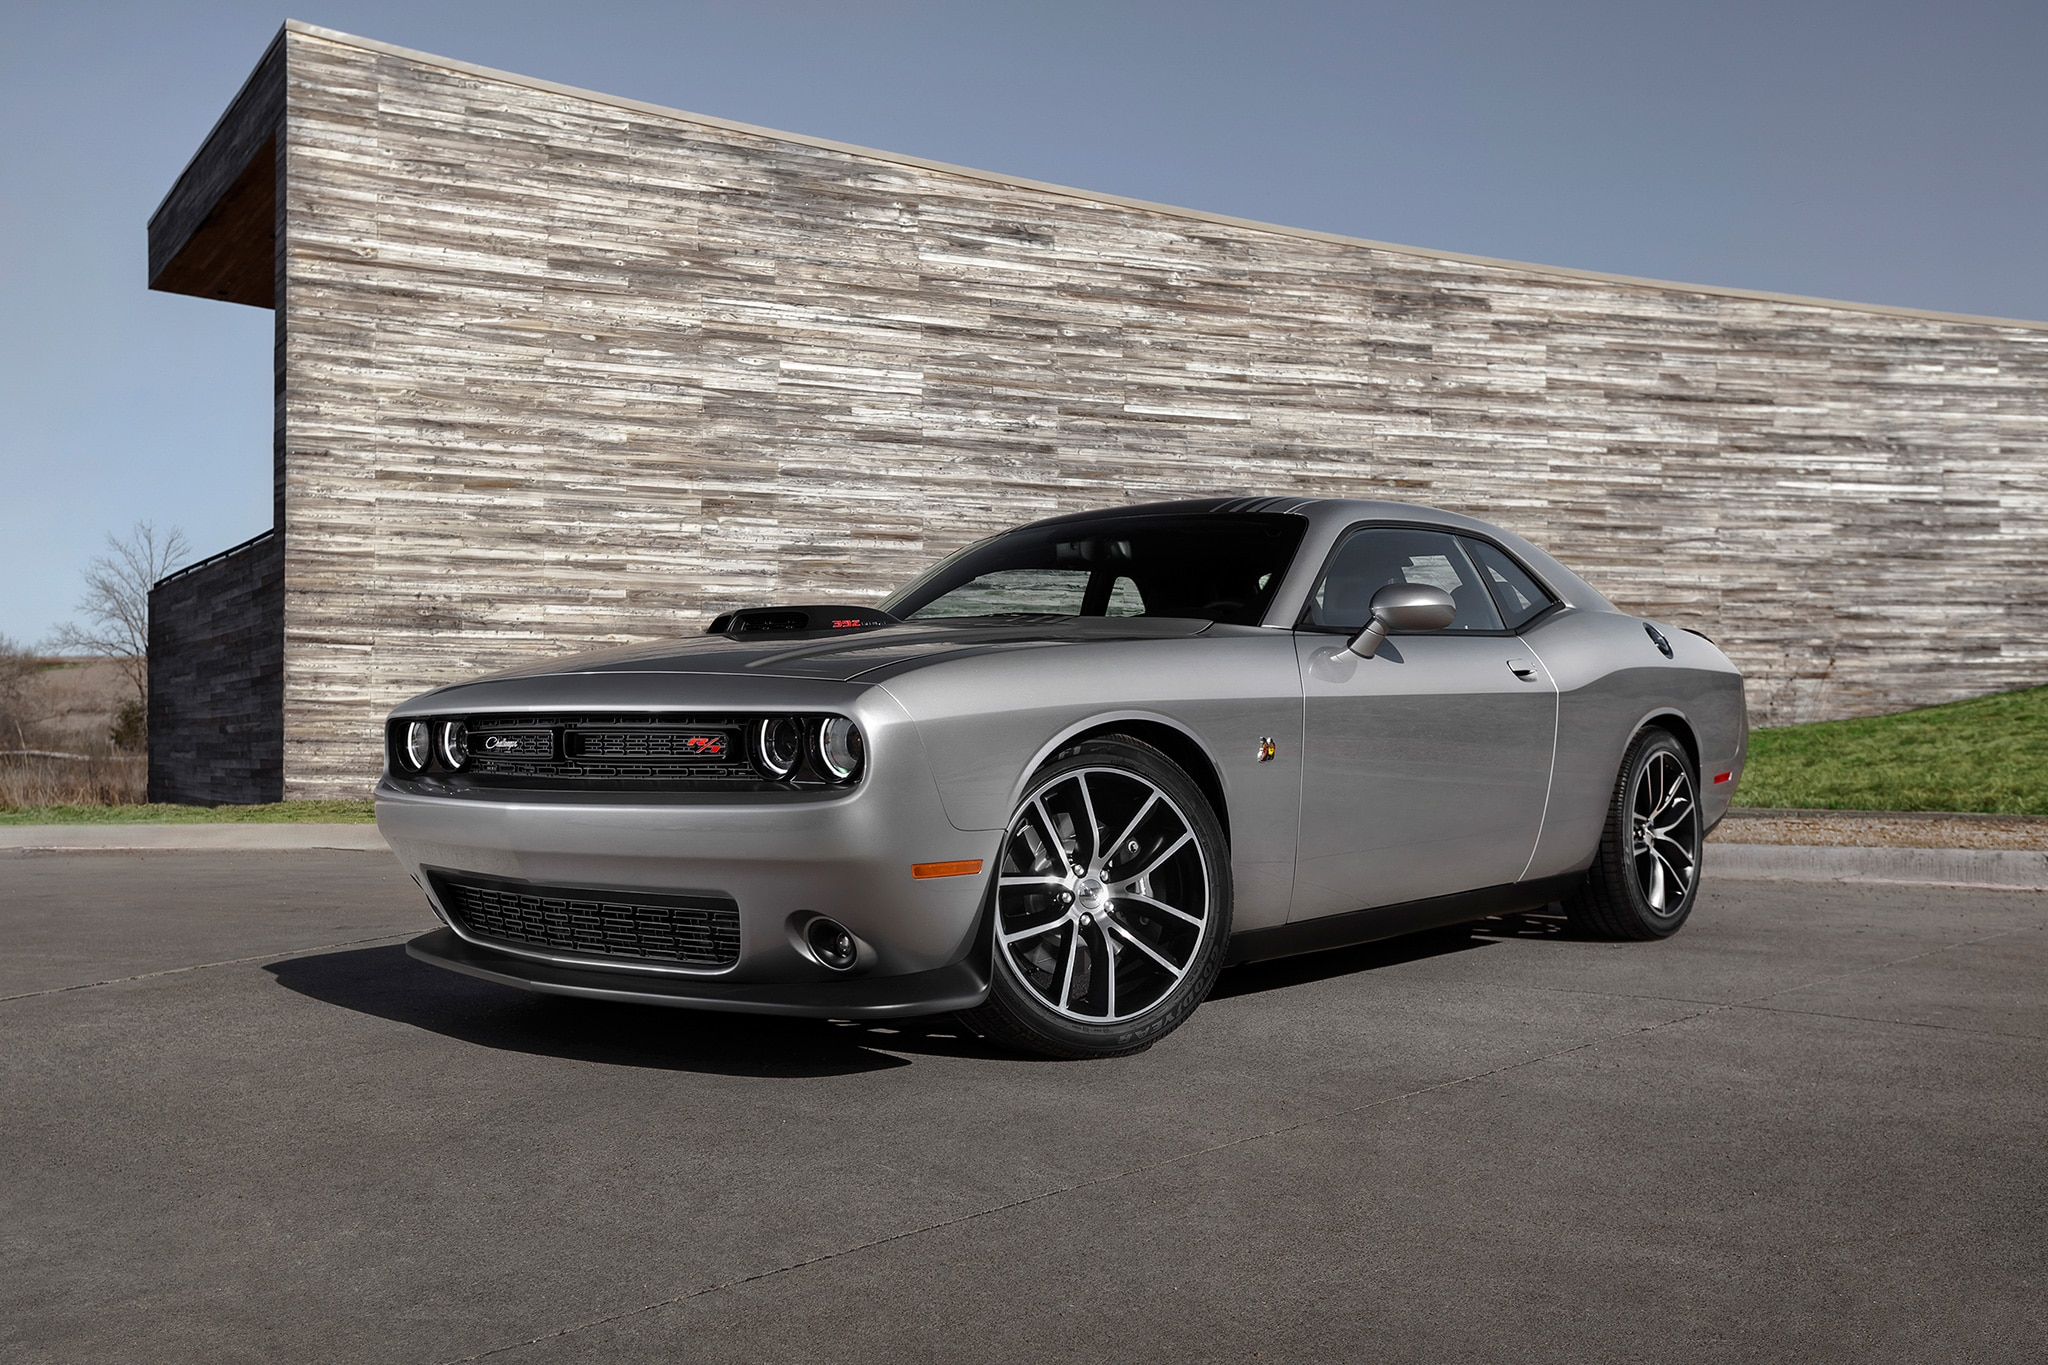 2016 Dodge Charger Hemi >> 2017 Dodge Challenger T/A and Charger Daytona Add Retro Flair, More Muscle | Automobile Magazine